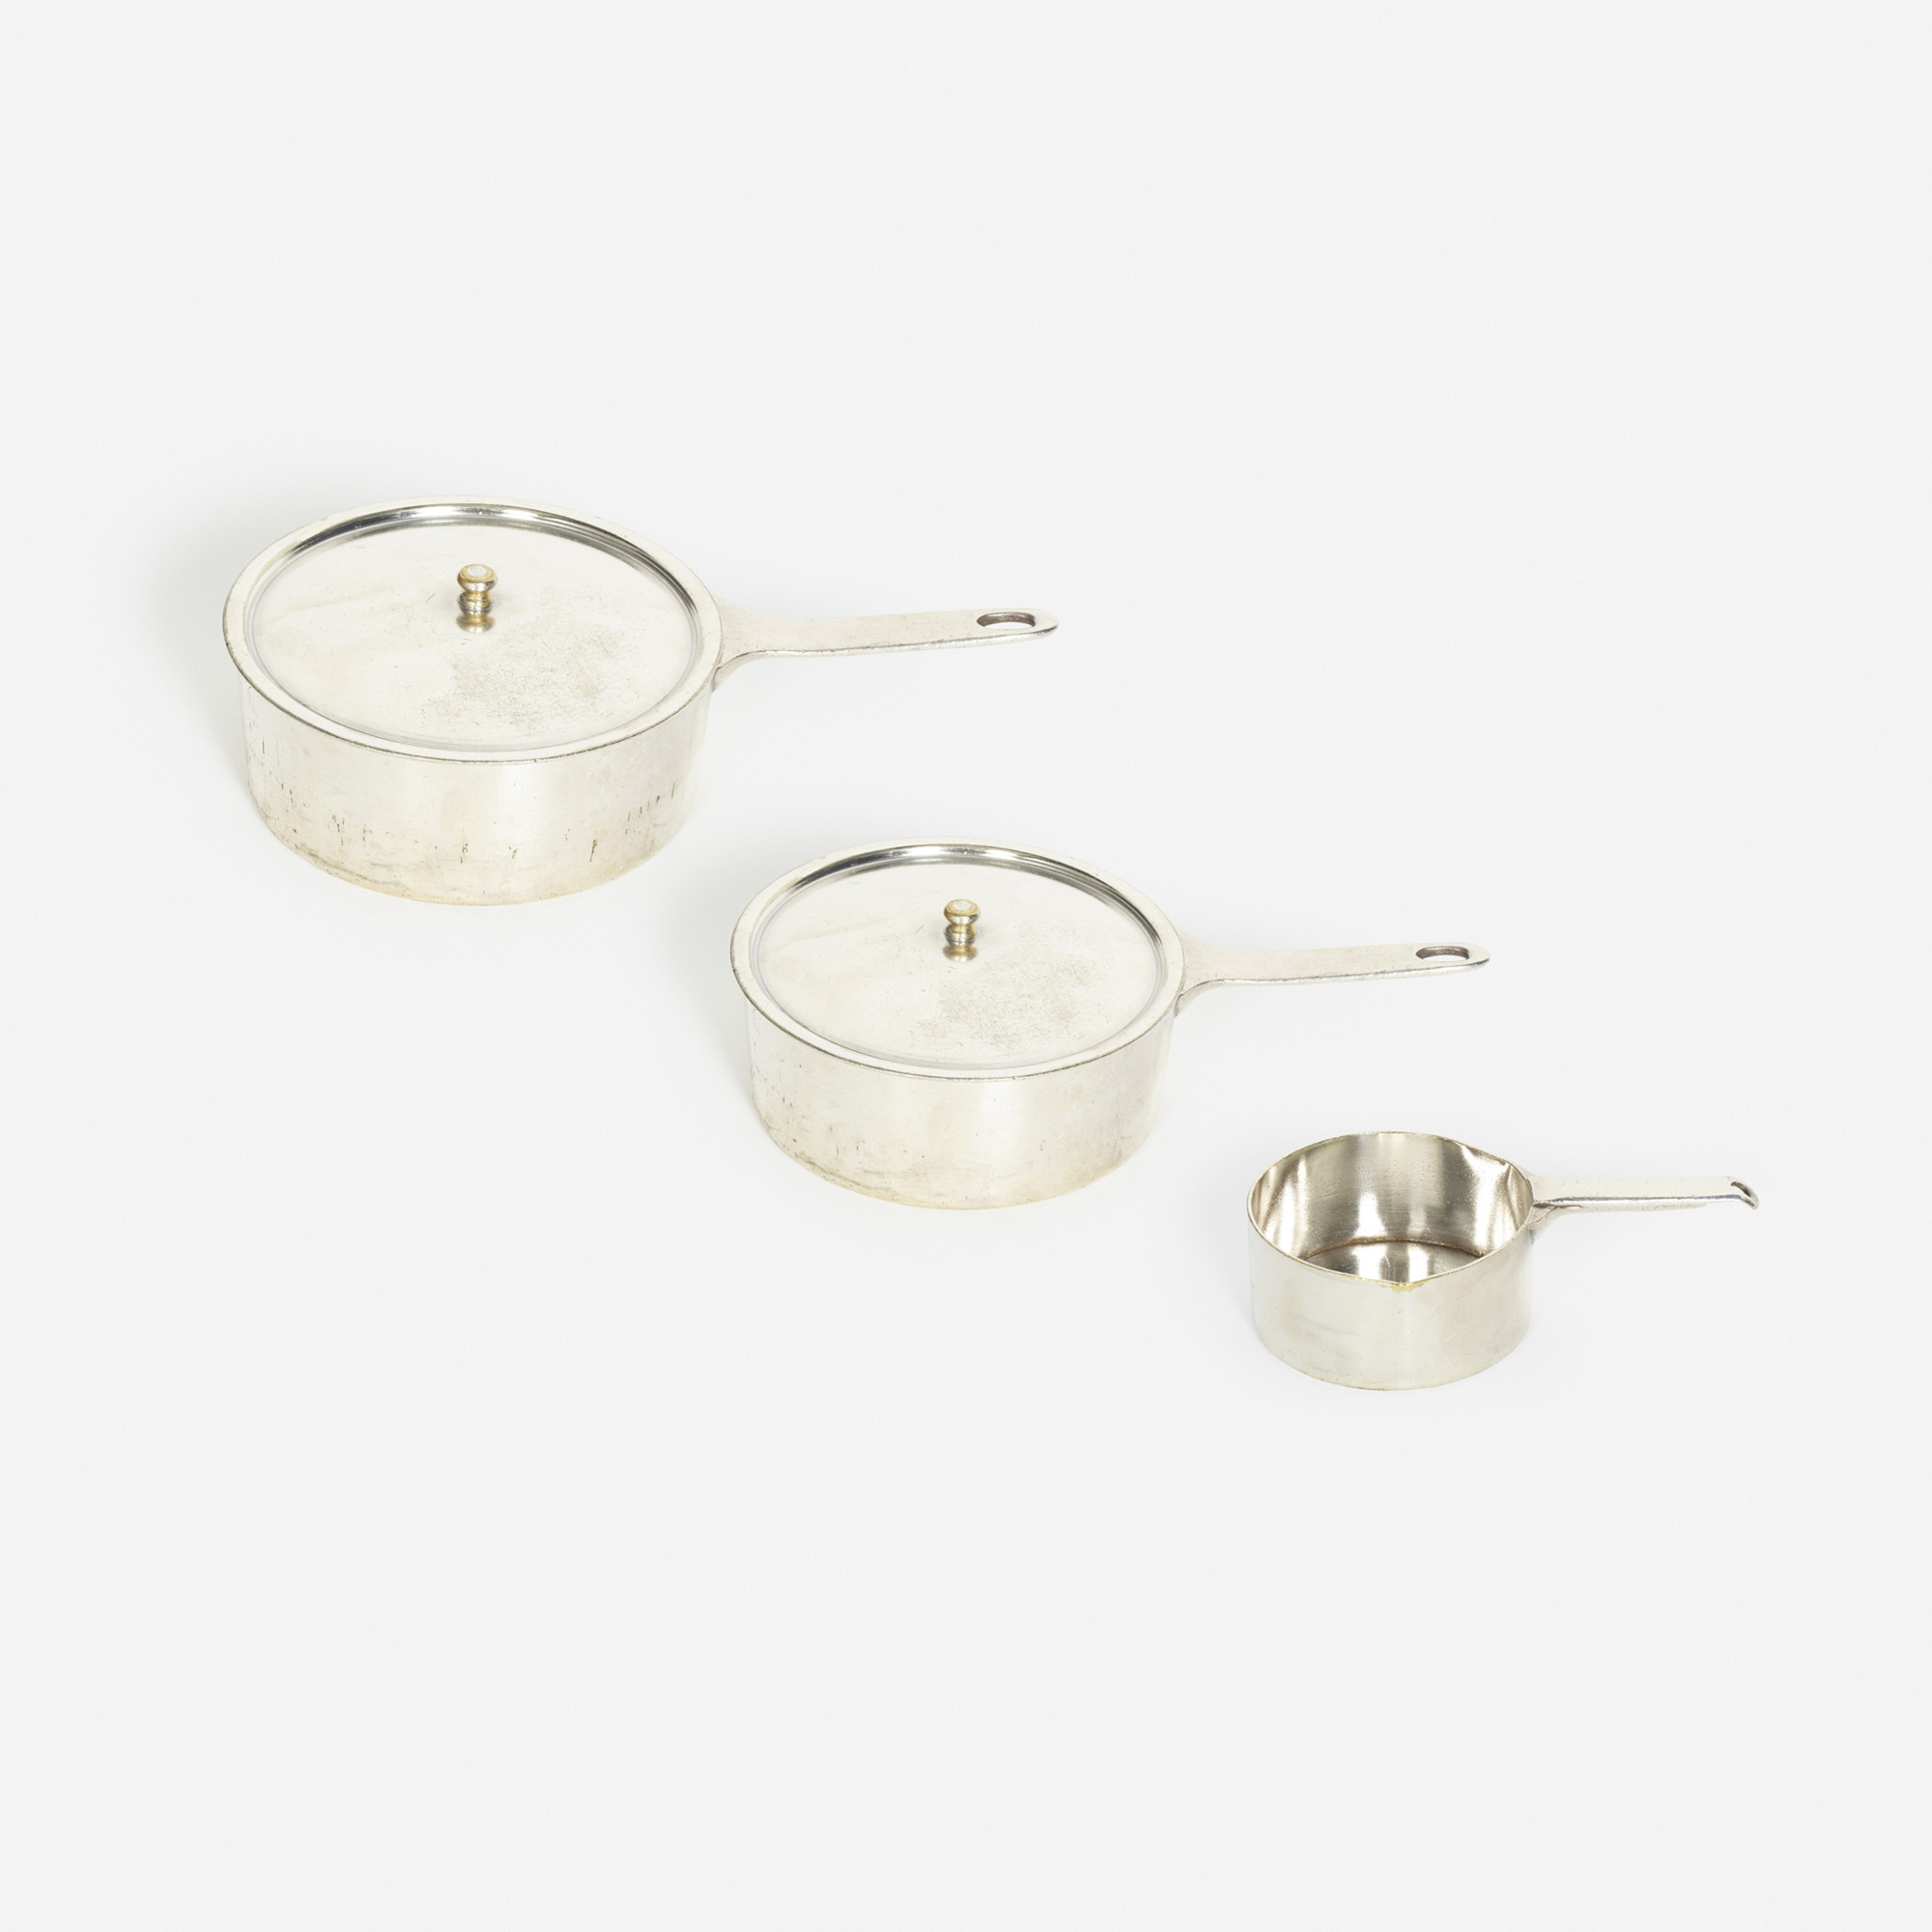 853: Garth and Ada Louise Huxtable / sauce pots from the kitchen of The Four Seasons, set of three (1 of 1)